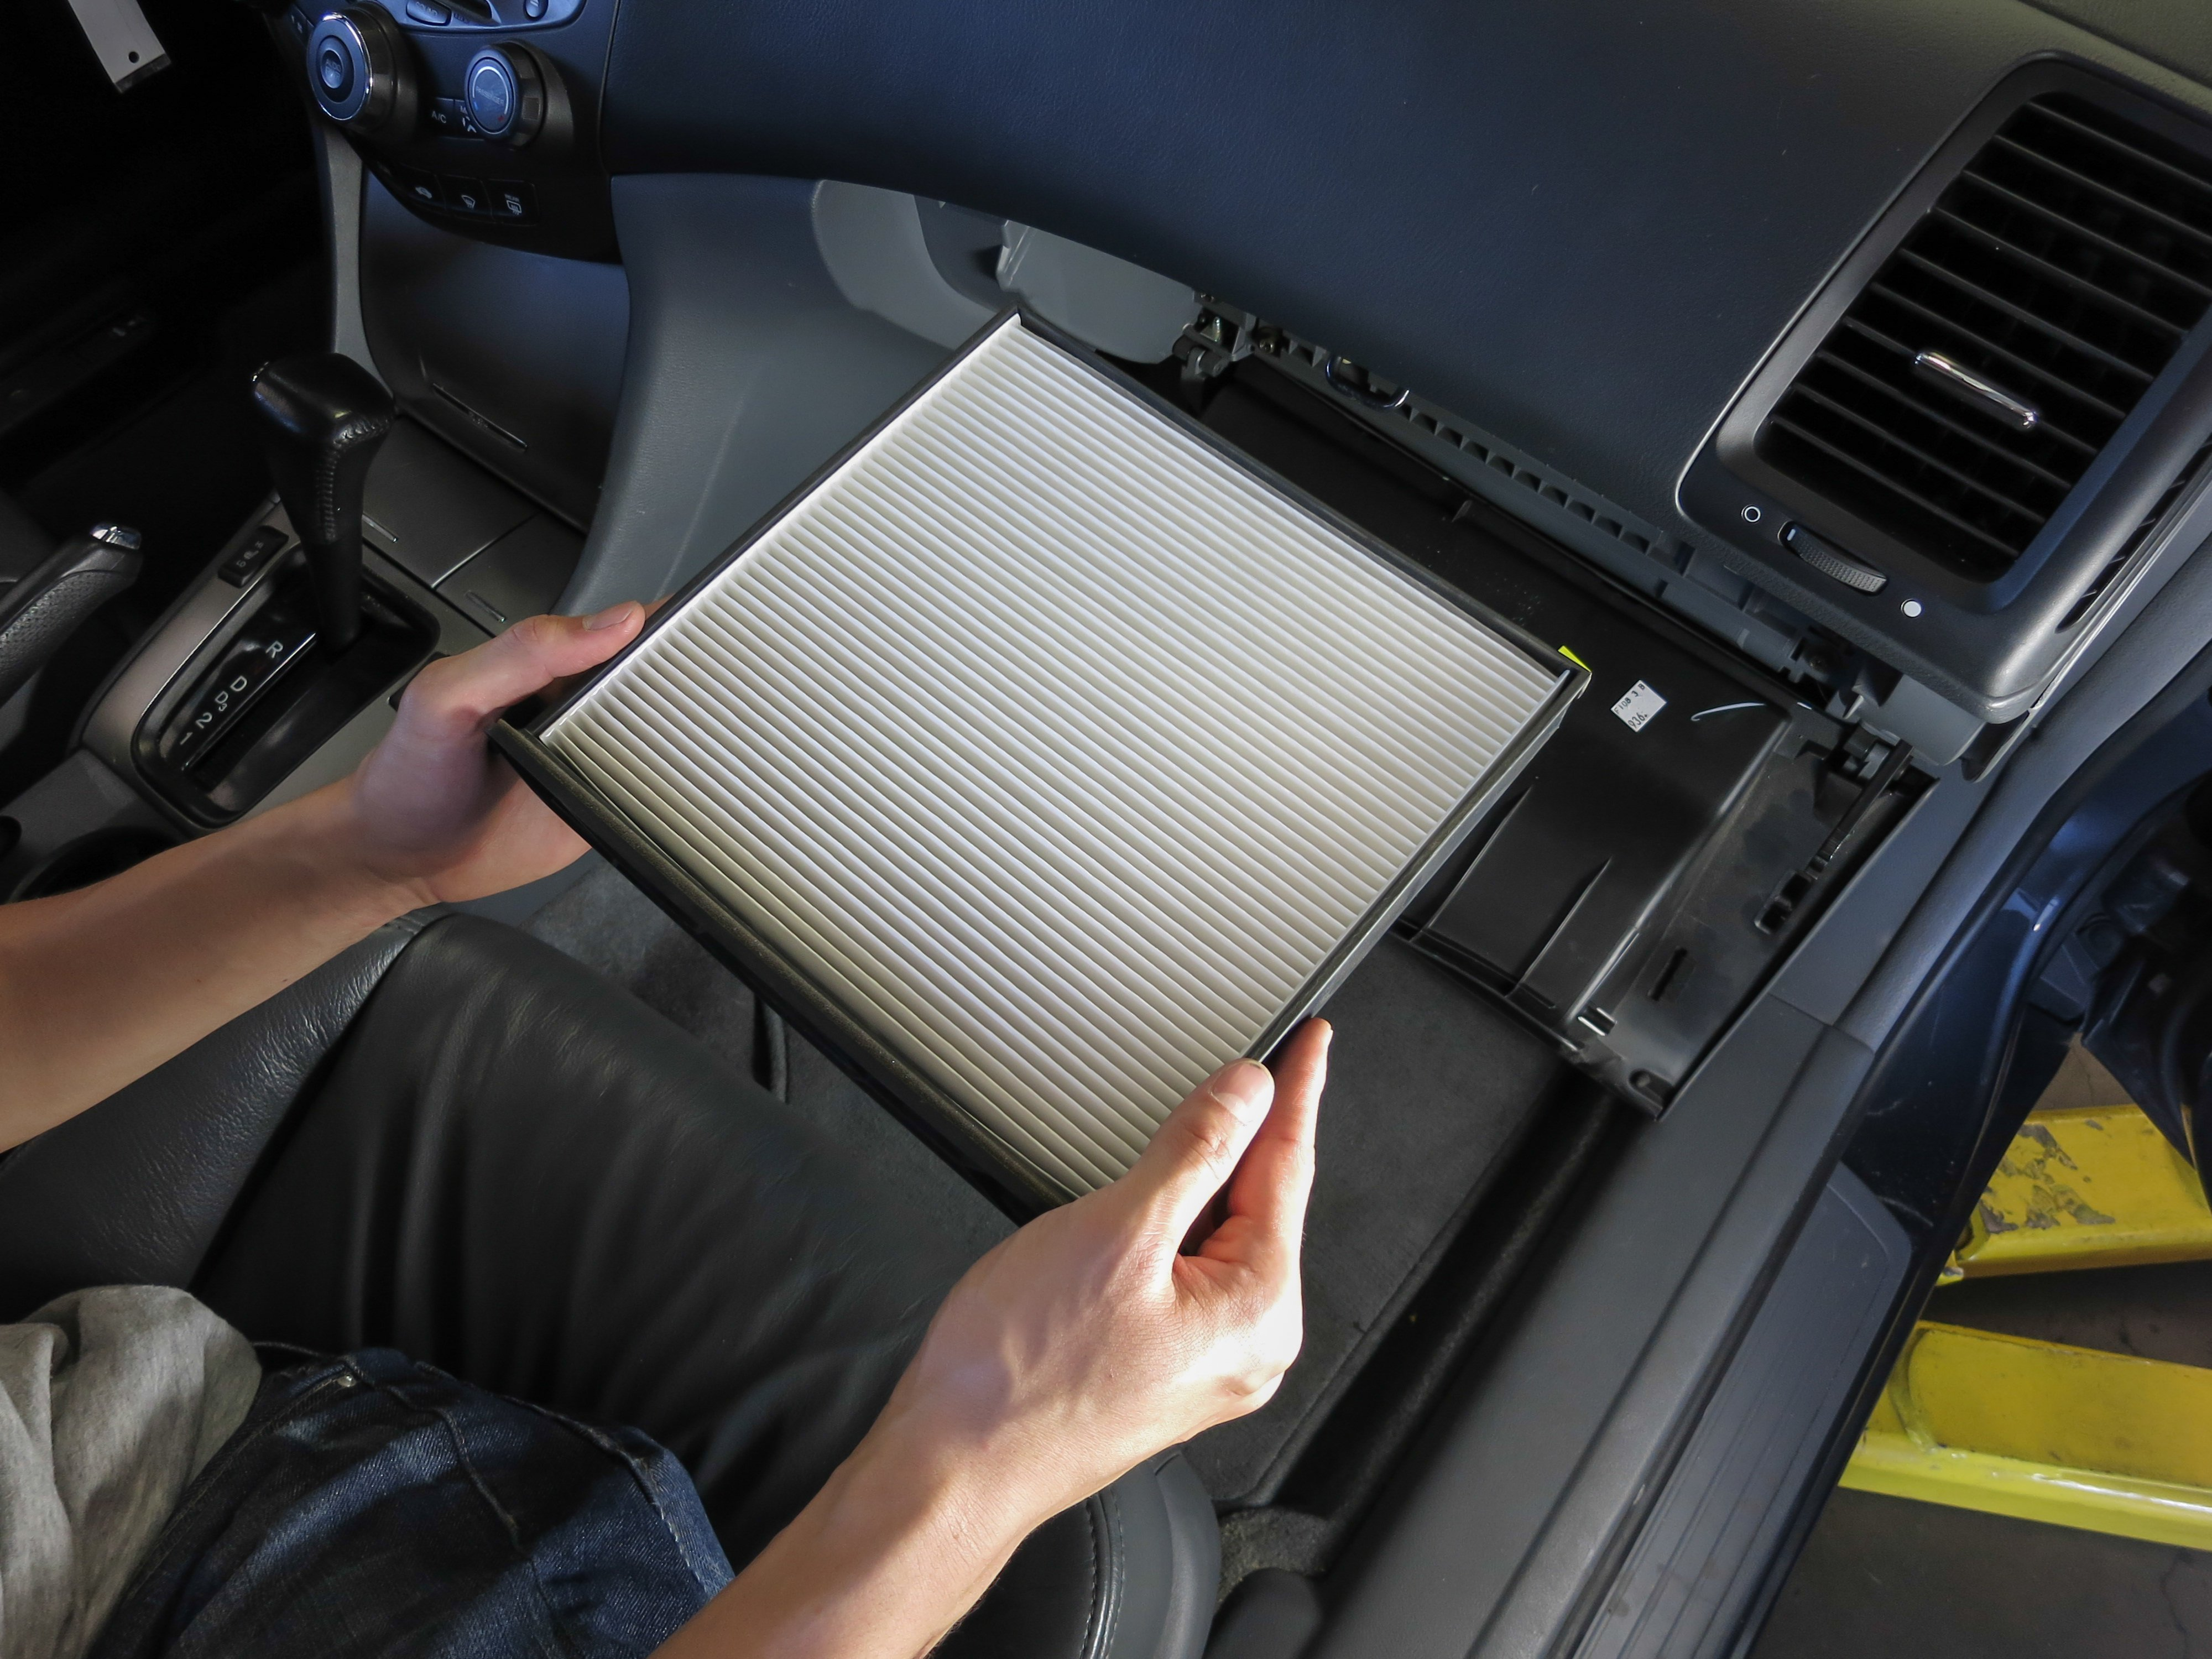 2005 Honda Accord Cabin Air Filter Replacement - iFixit